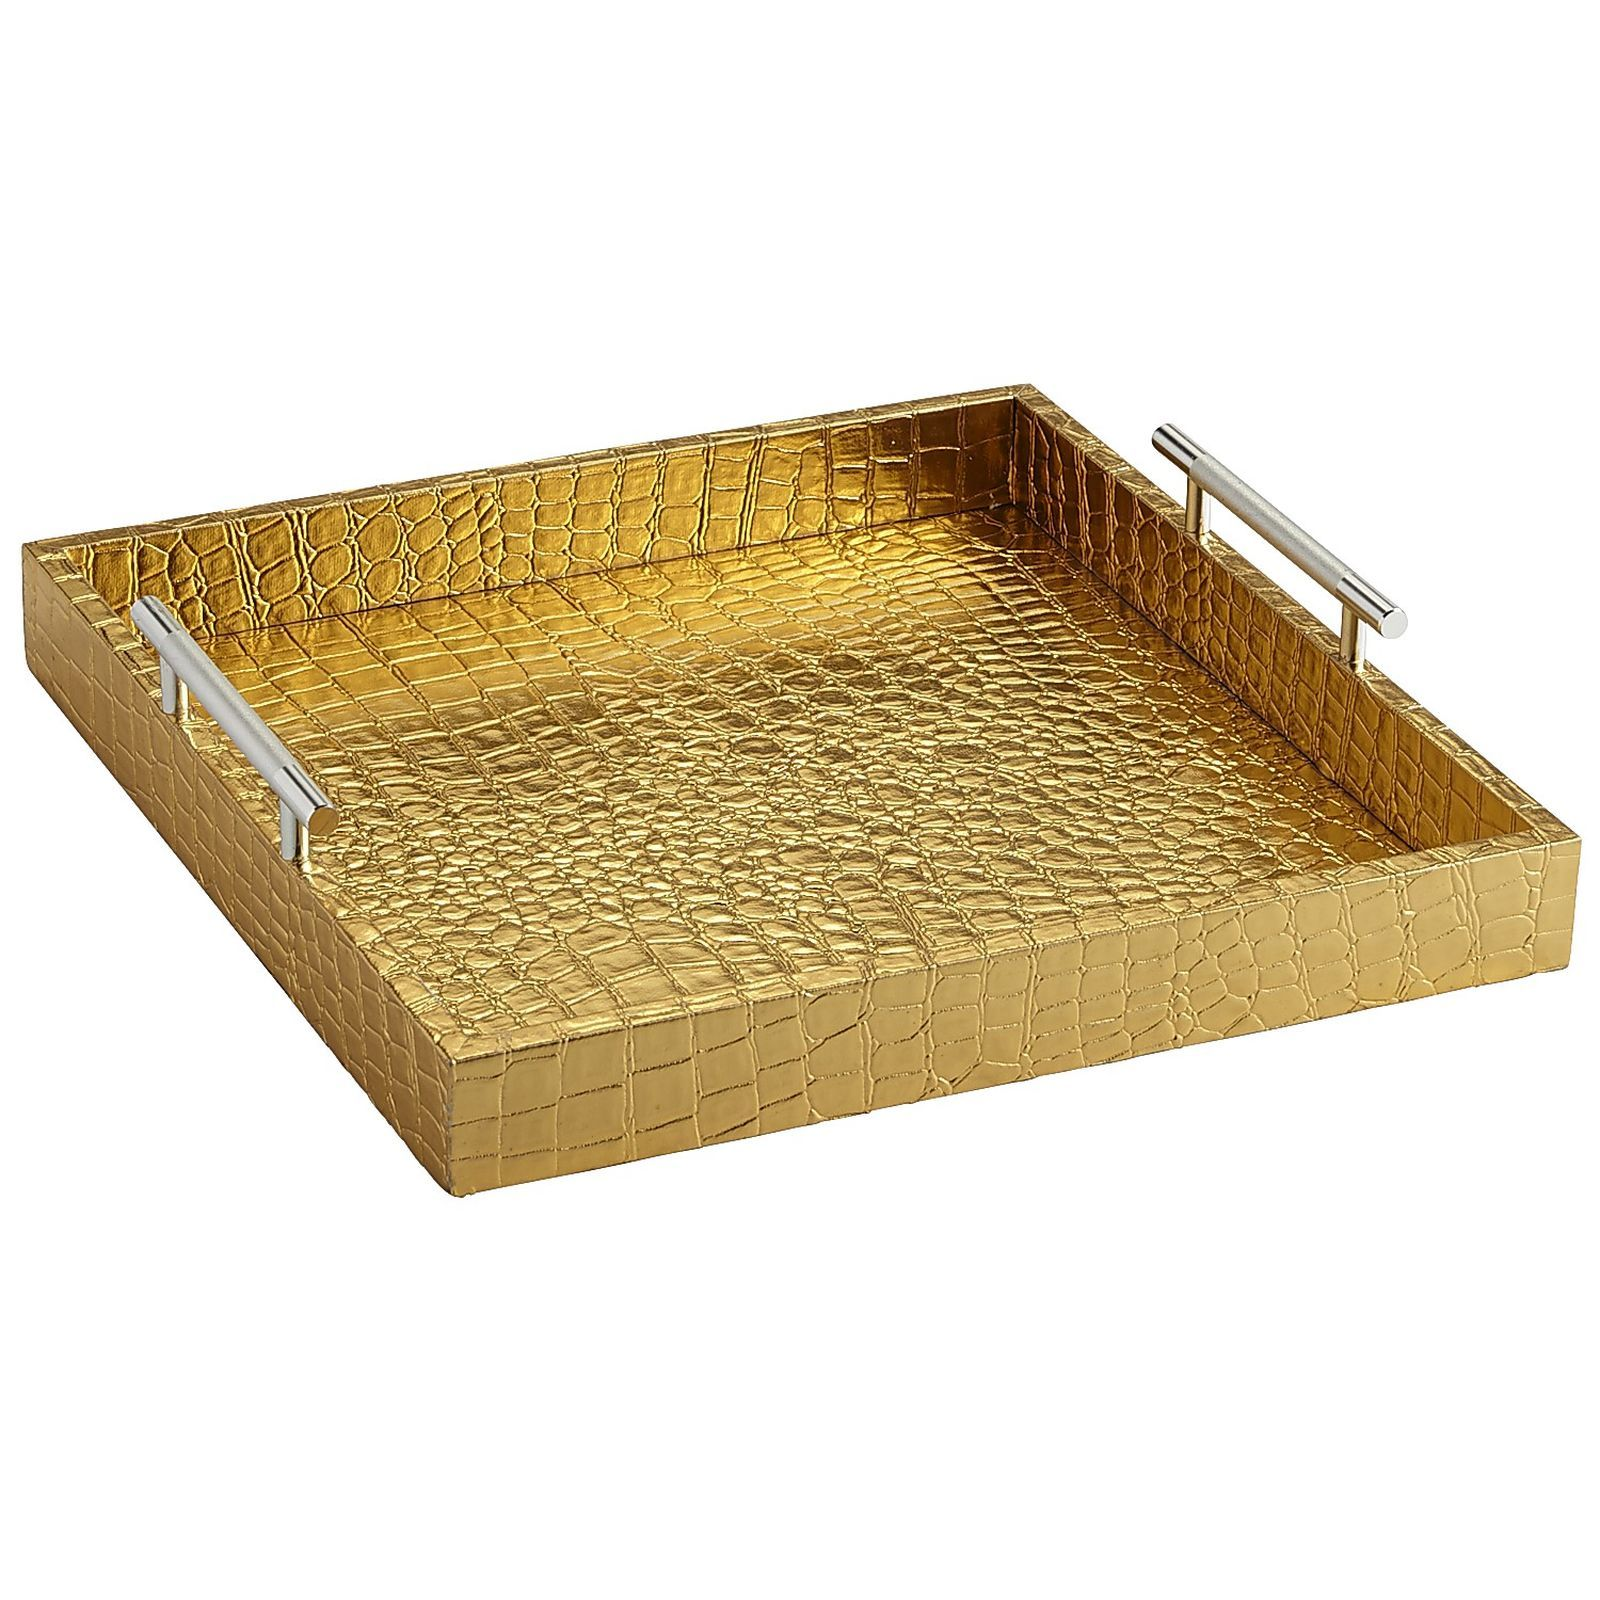 Faux Croc Tray - Square Gold | Pier 1 Imports. Serving TraysSquaresTrays